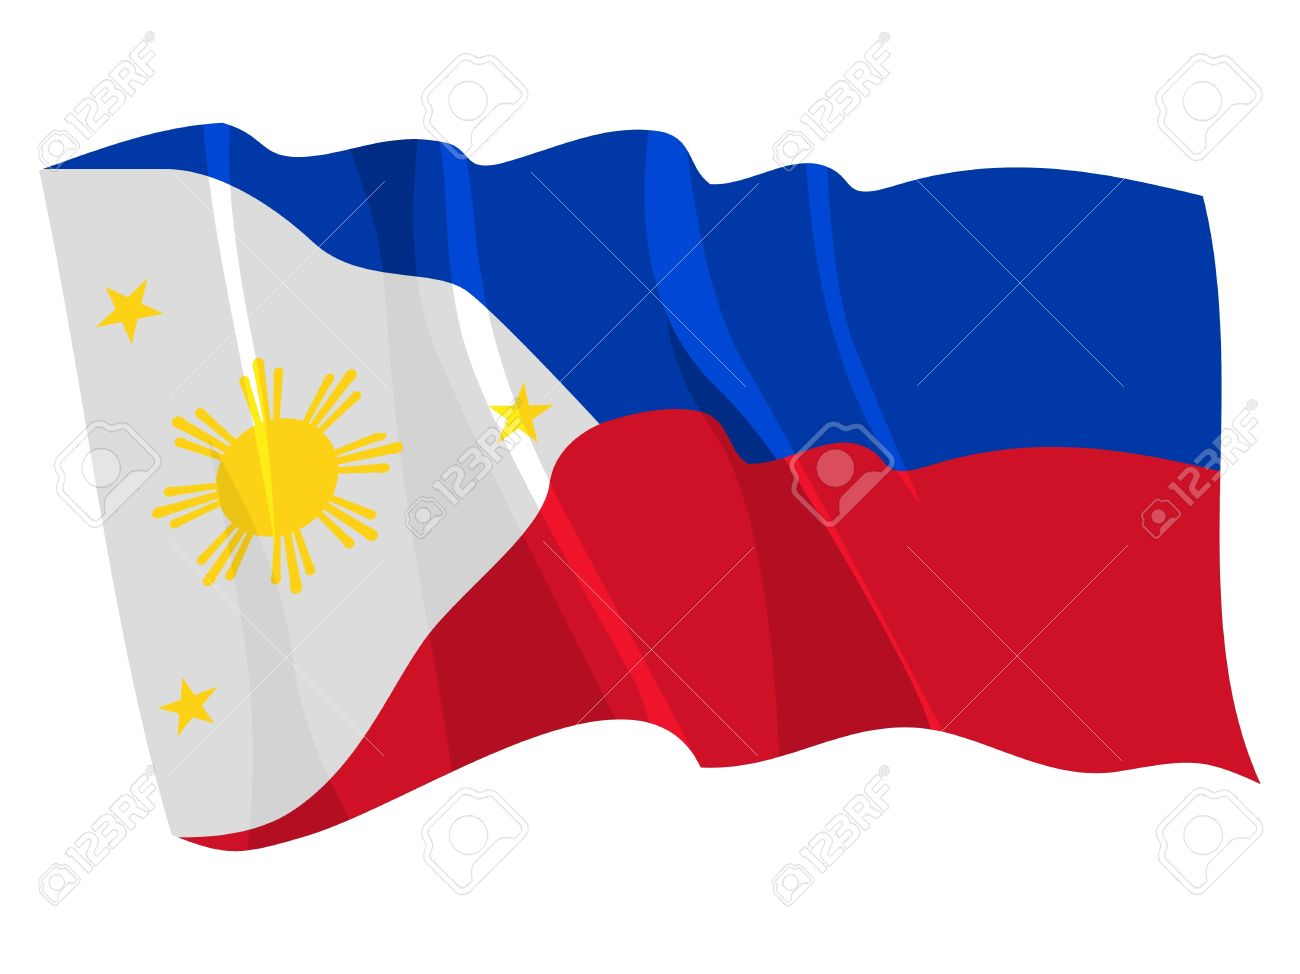 Political Waving Flag Of Philippines Royalty Free Cliparts Vectors And Stock Illustration Image 12495691 Vector files are designed so as to be enlarged in any format without loss of quality. political waving flag of philippines